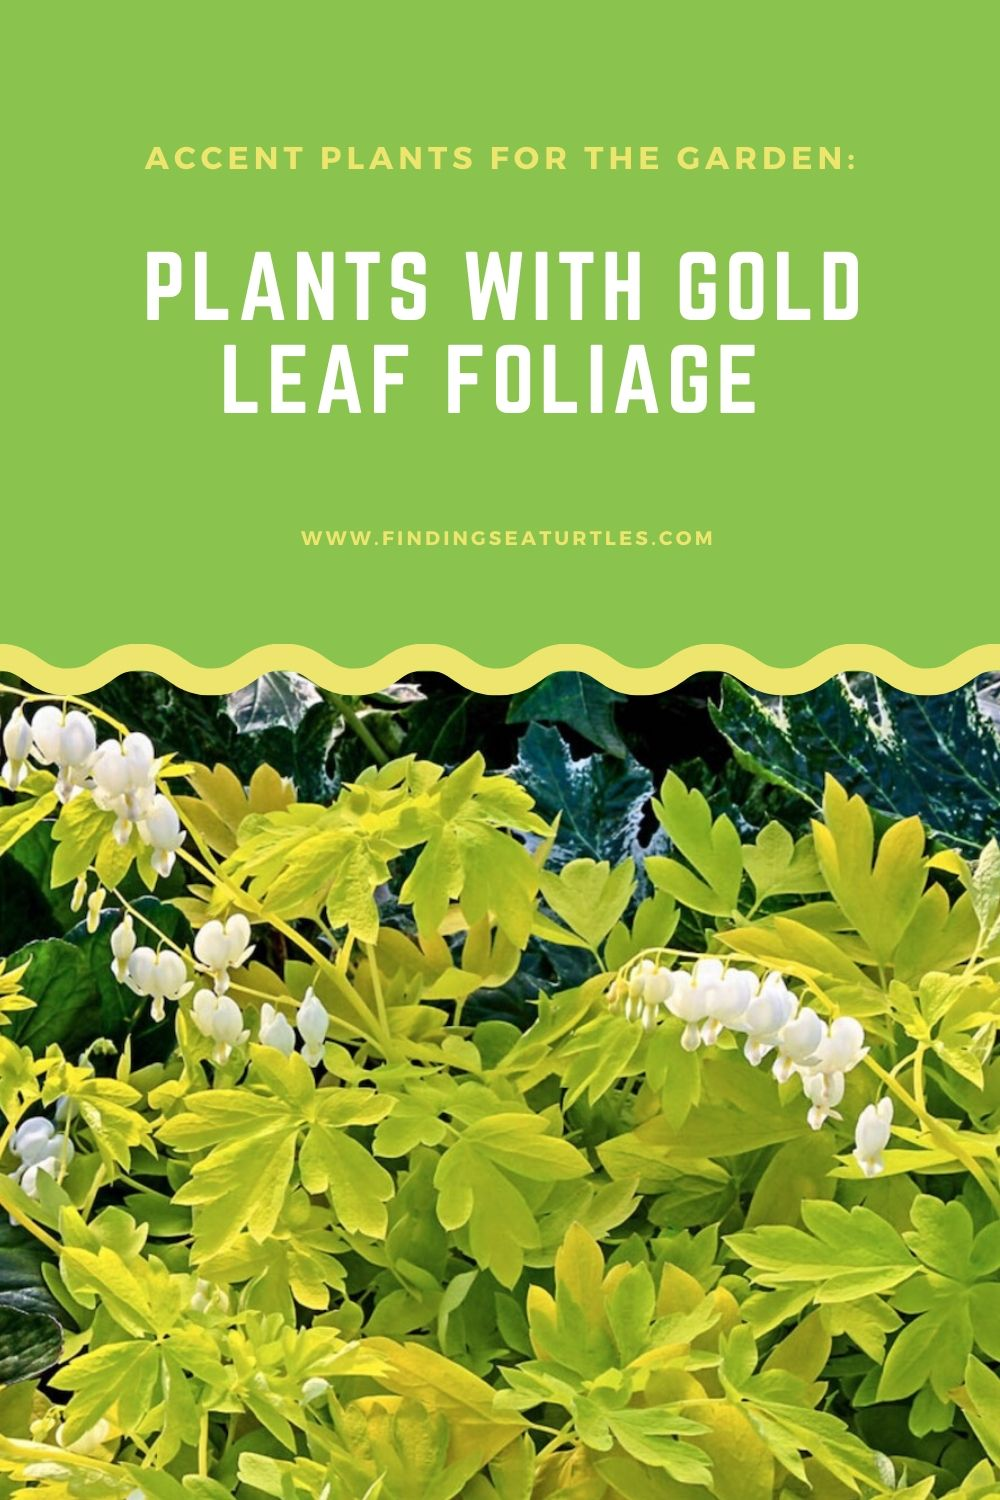 ACCENT PLANTS FOR THE GARDEN PLANTS WITH GOLDEN LEAF FOLIAGE #GoldFoliage #PlantswithGoldLeaves #DramaticFoliagePlants #Gardening #Landscapes #GoldLeafPlants